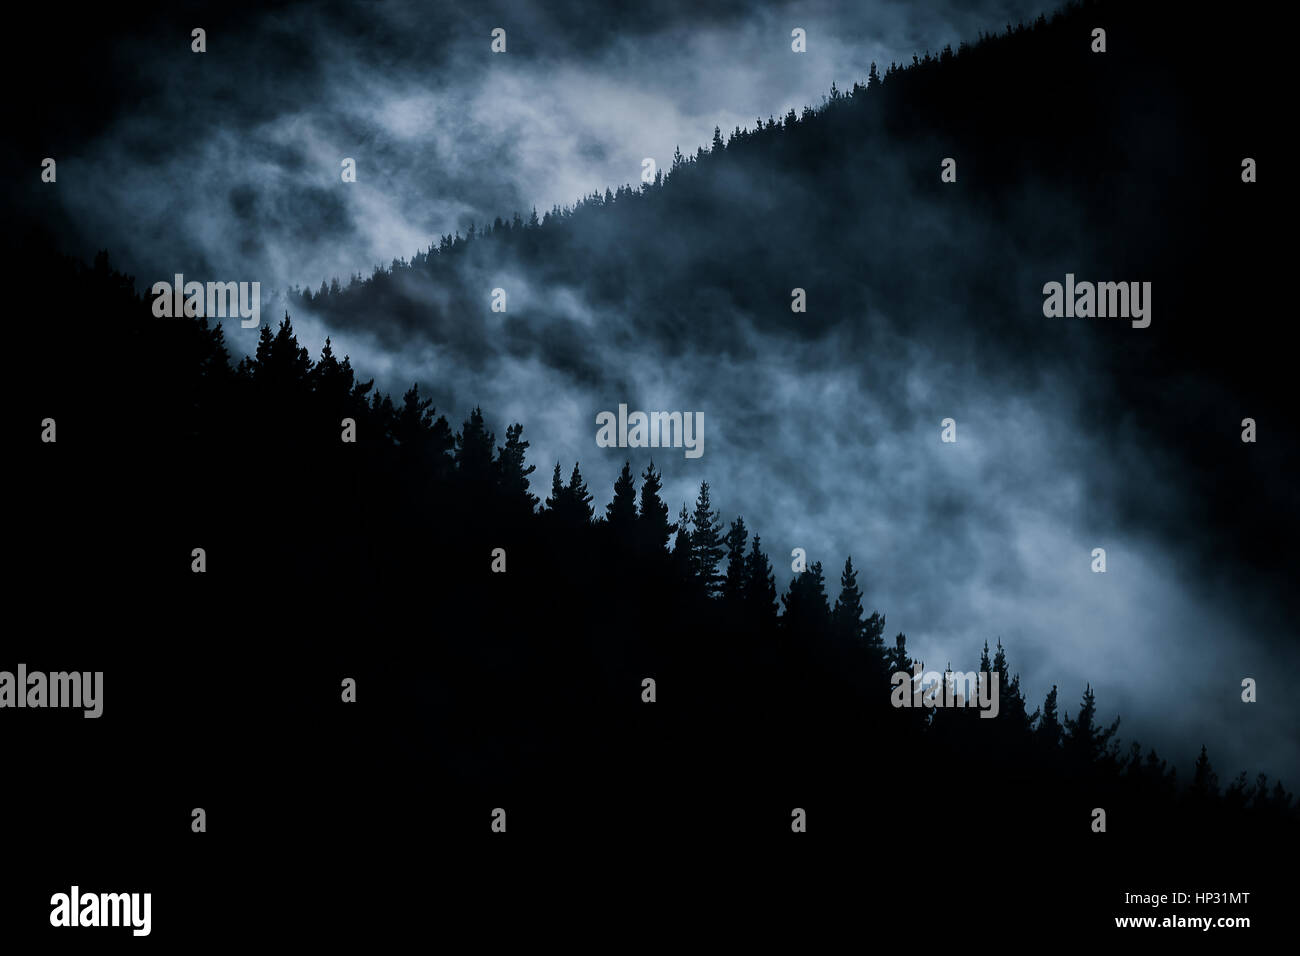 Scary Foggy Mountain at nigh Photo Stock